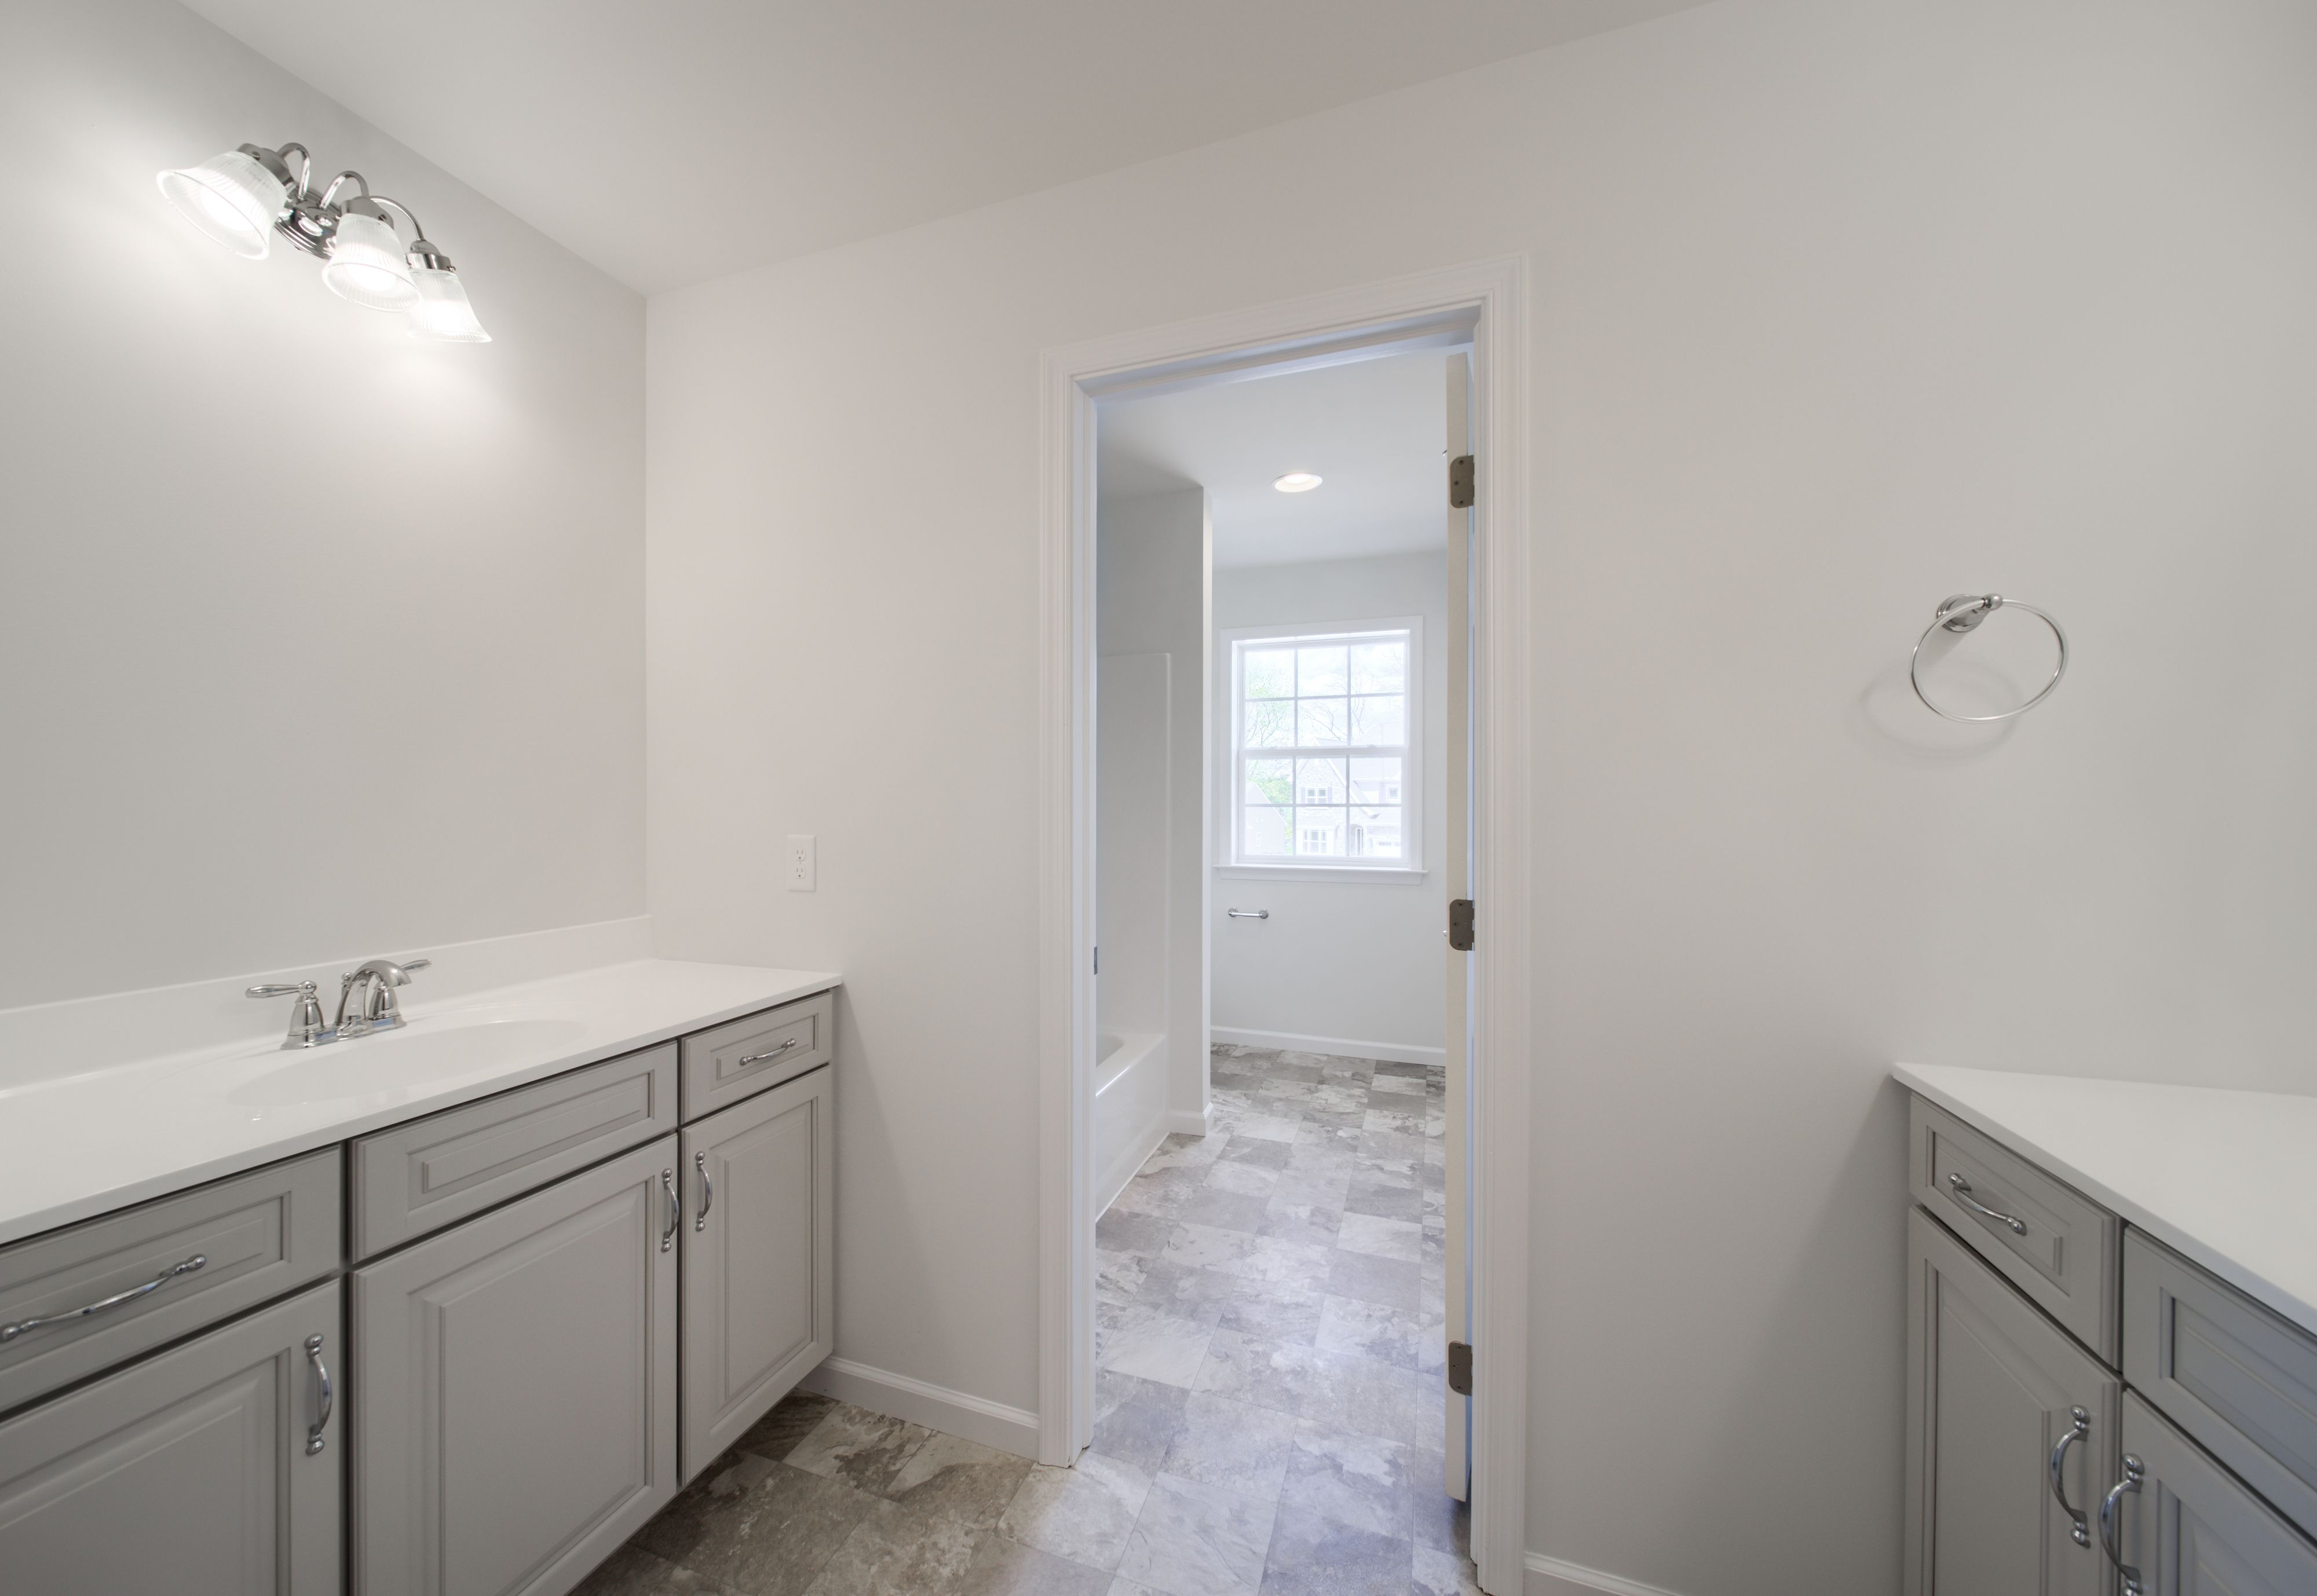 Bathroom featured in the Covington Manor By Keystone Custom Homes in Baltimore, MD